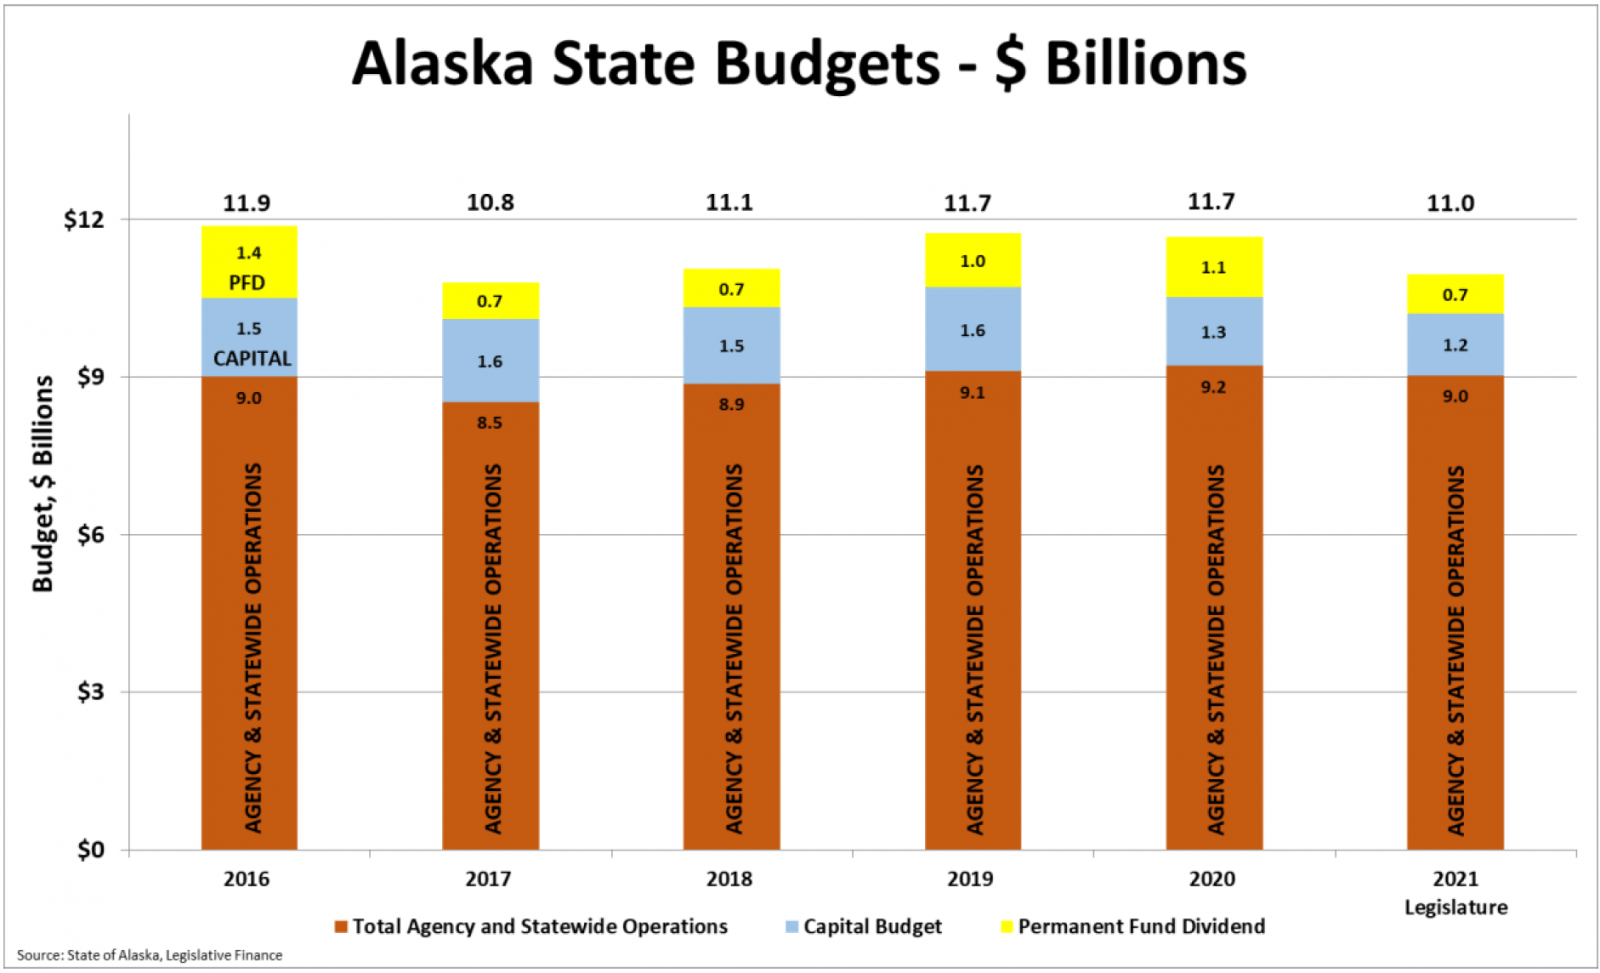 Tough Decisions Ahead for State Budgets